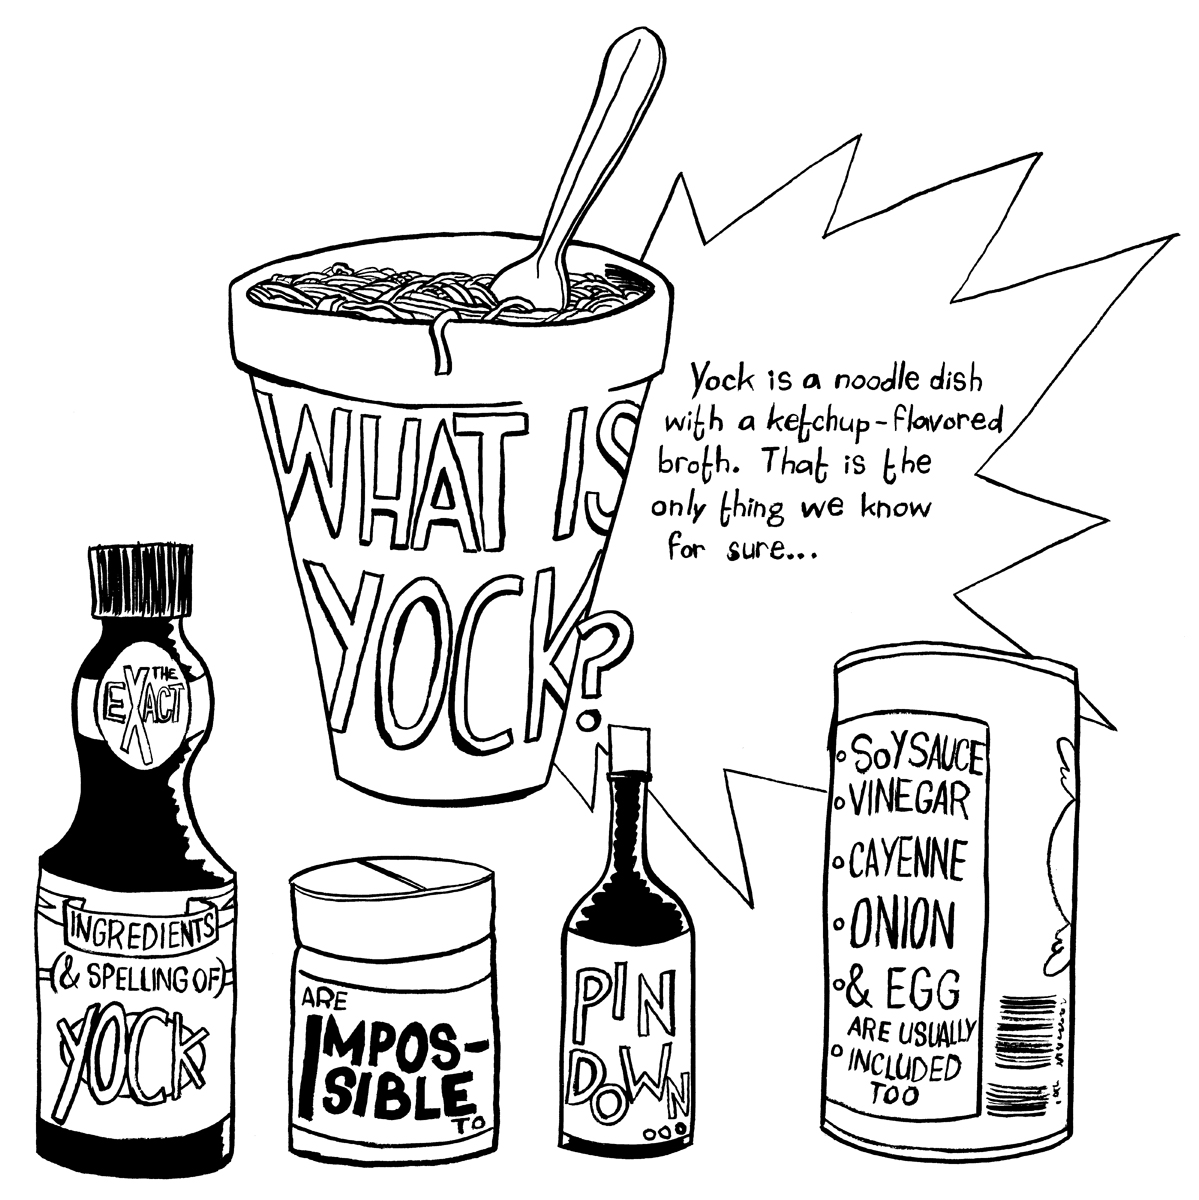 This image is a sample page from the final yock project, a comic book with line drawings. This page shows bottles, referencing the different ingredients that make up yock.